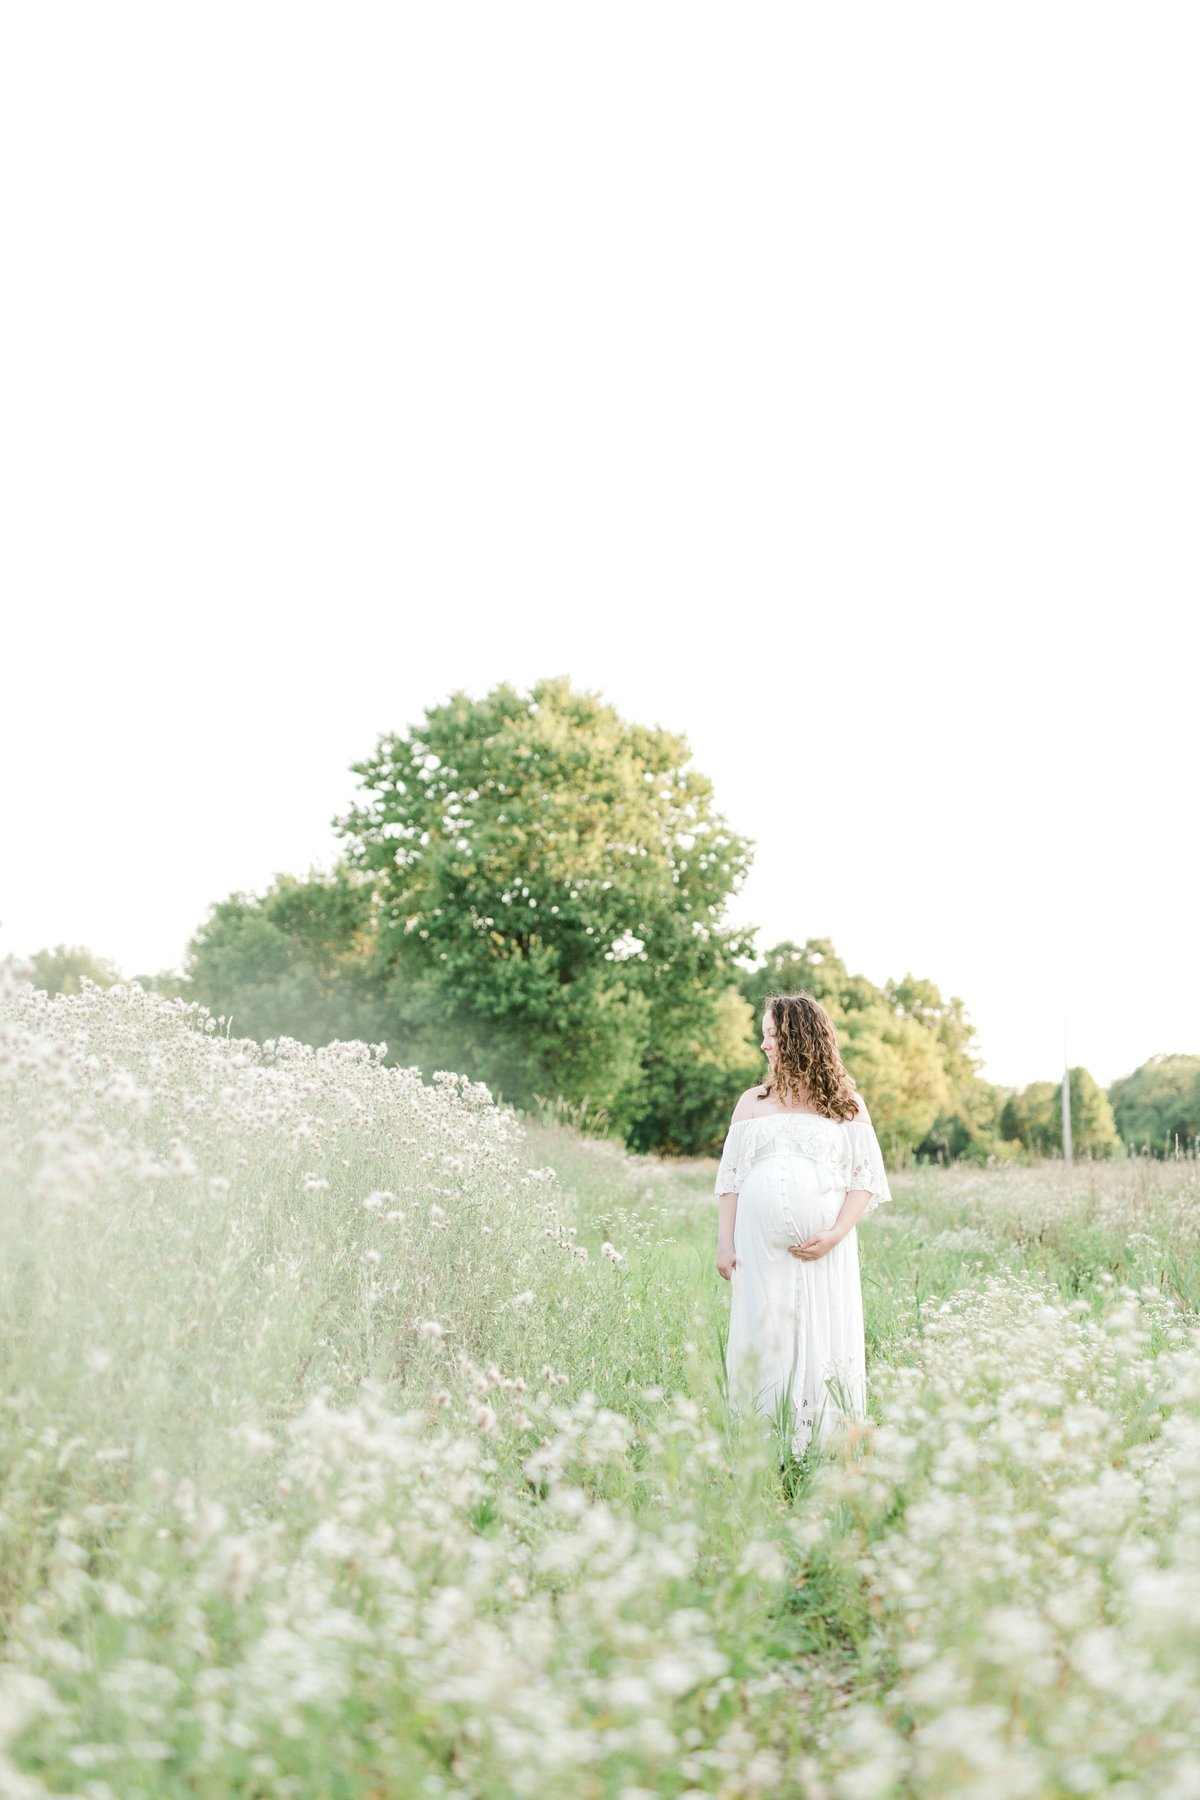 ETHEREAL SUMMER MATERNITY SESSION | MECHANICSBURG MATERNITY PHOTOGRAPHER_0975